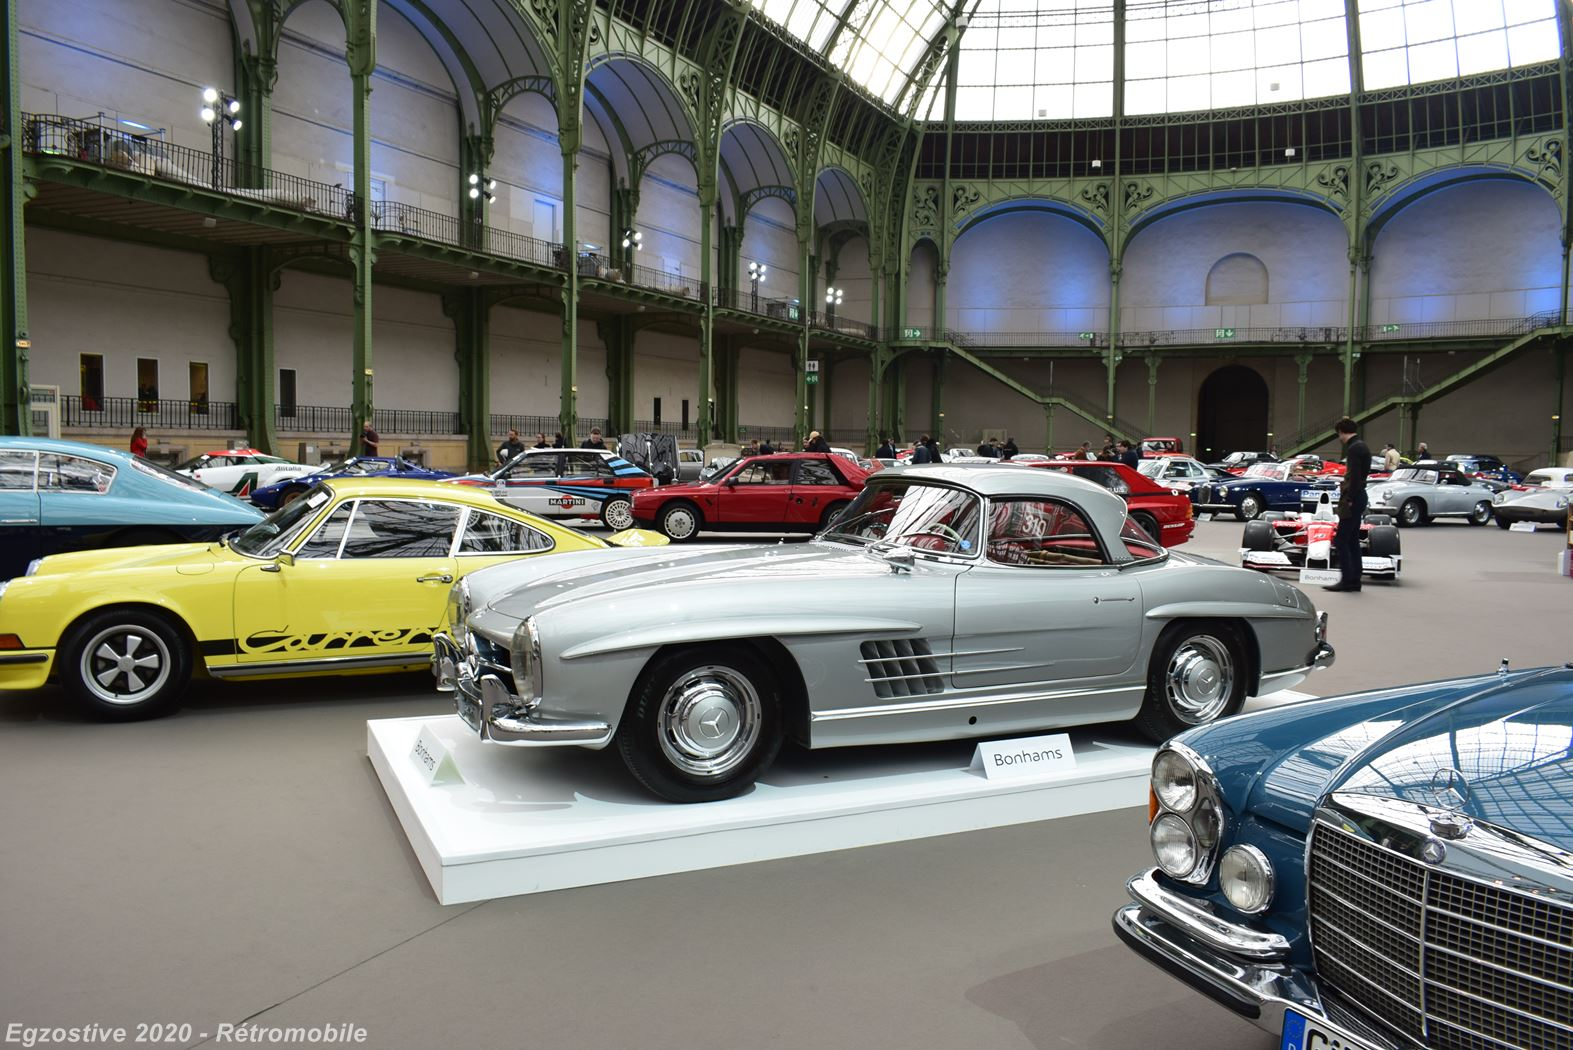 Bonhams' Auction in Paris was a car show on its own right